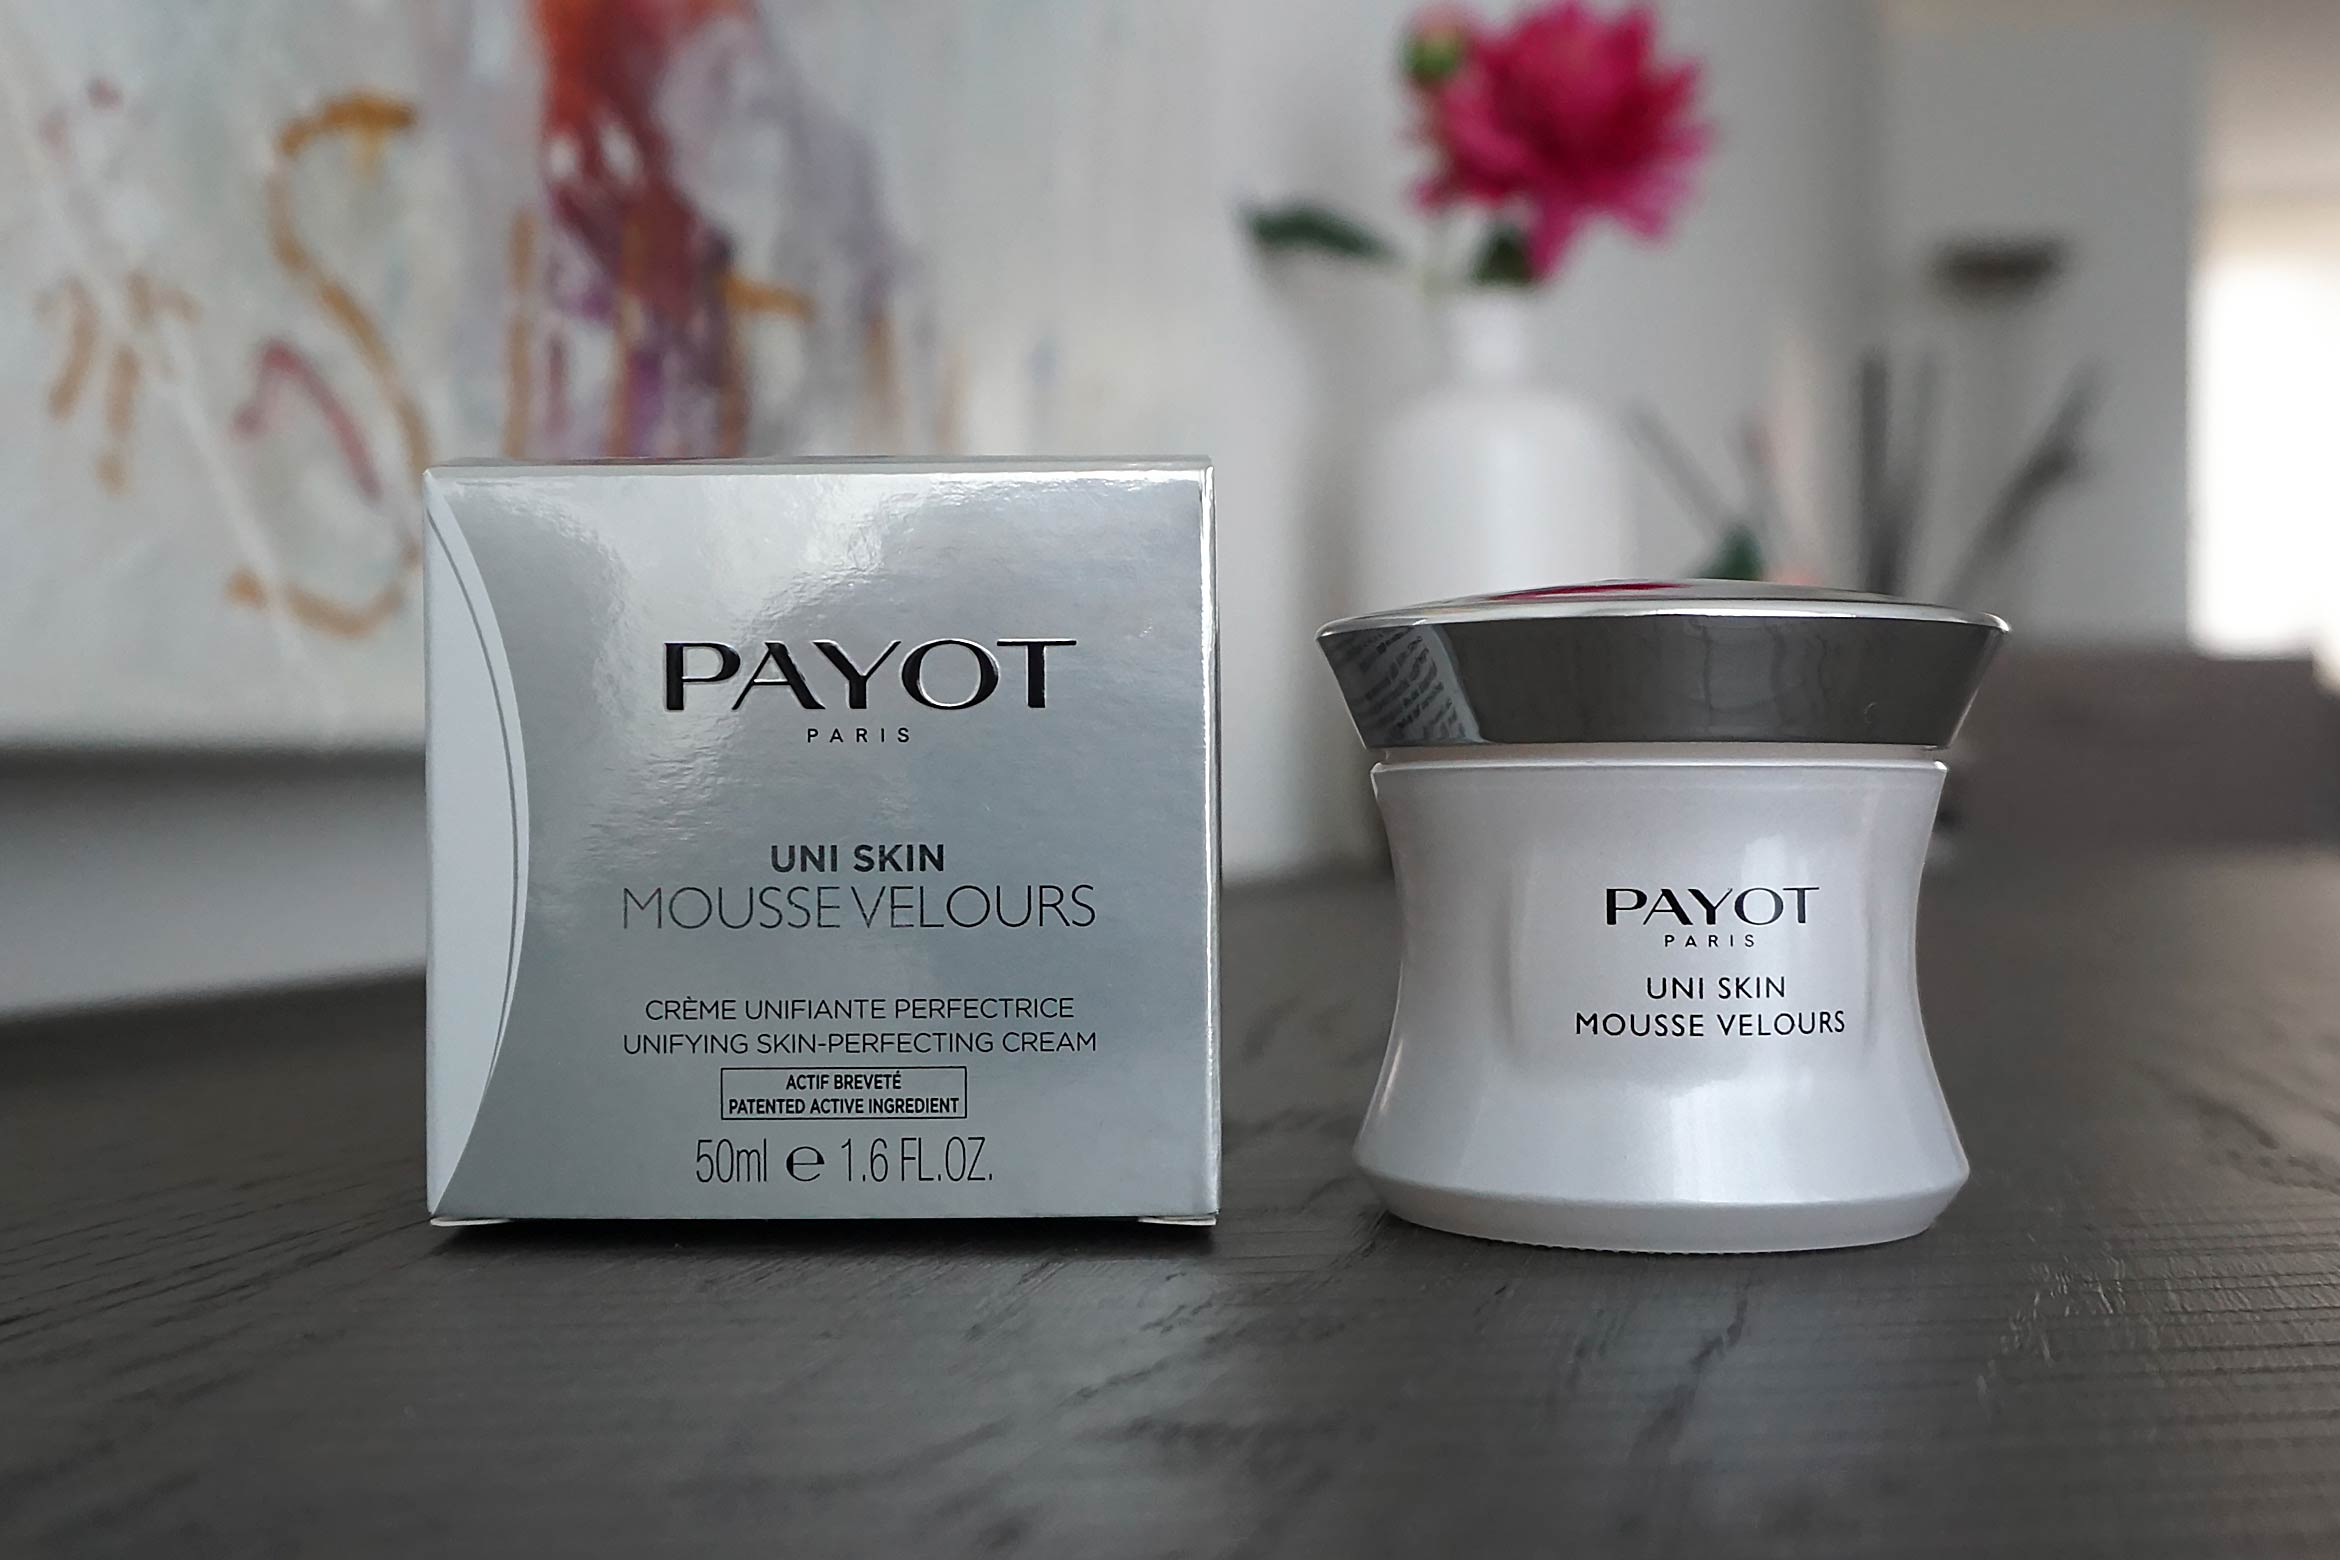 payot-uni-skin-mousse-velours-review-1